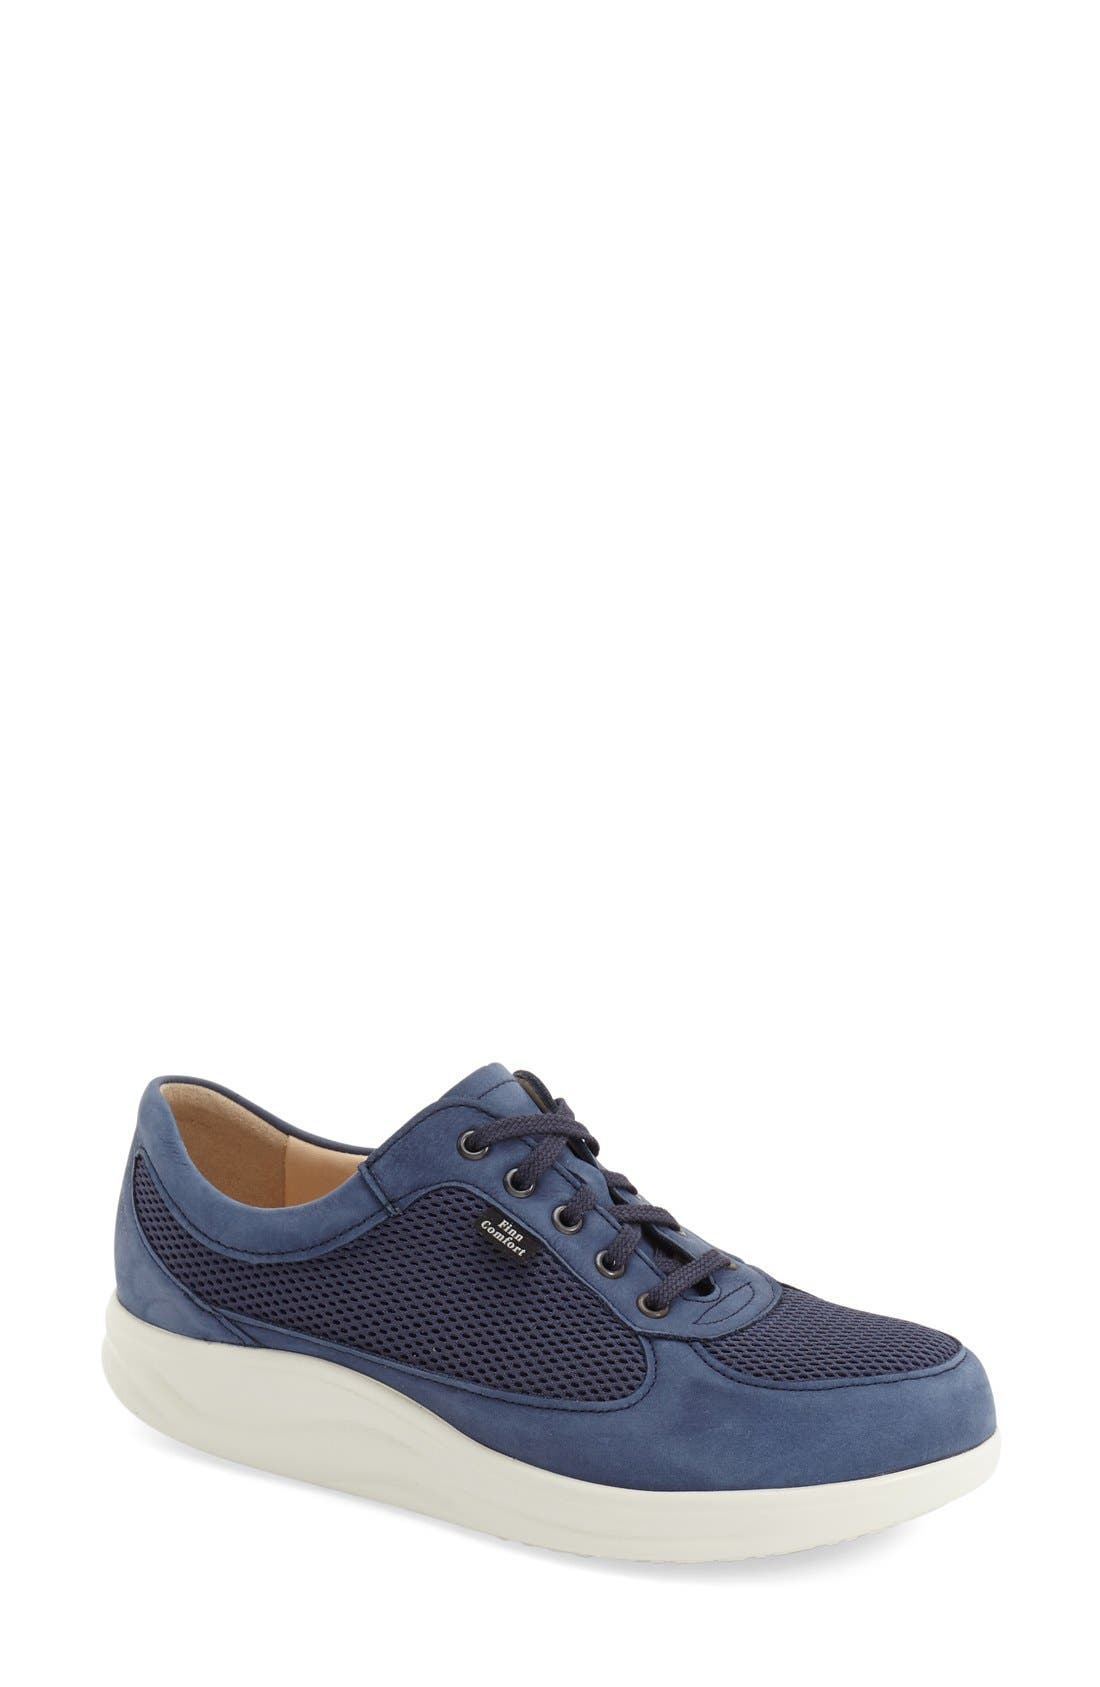 'Columbia' Sneaker,                         Main,                         color, DENIM NUBUCK LEATHER